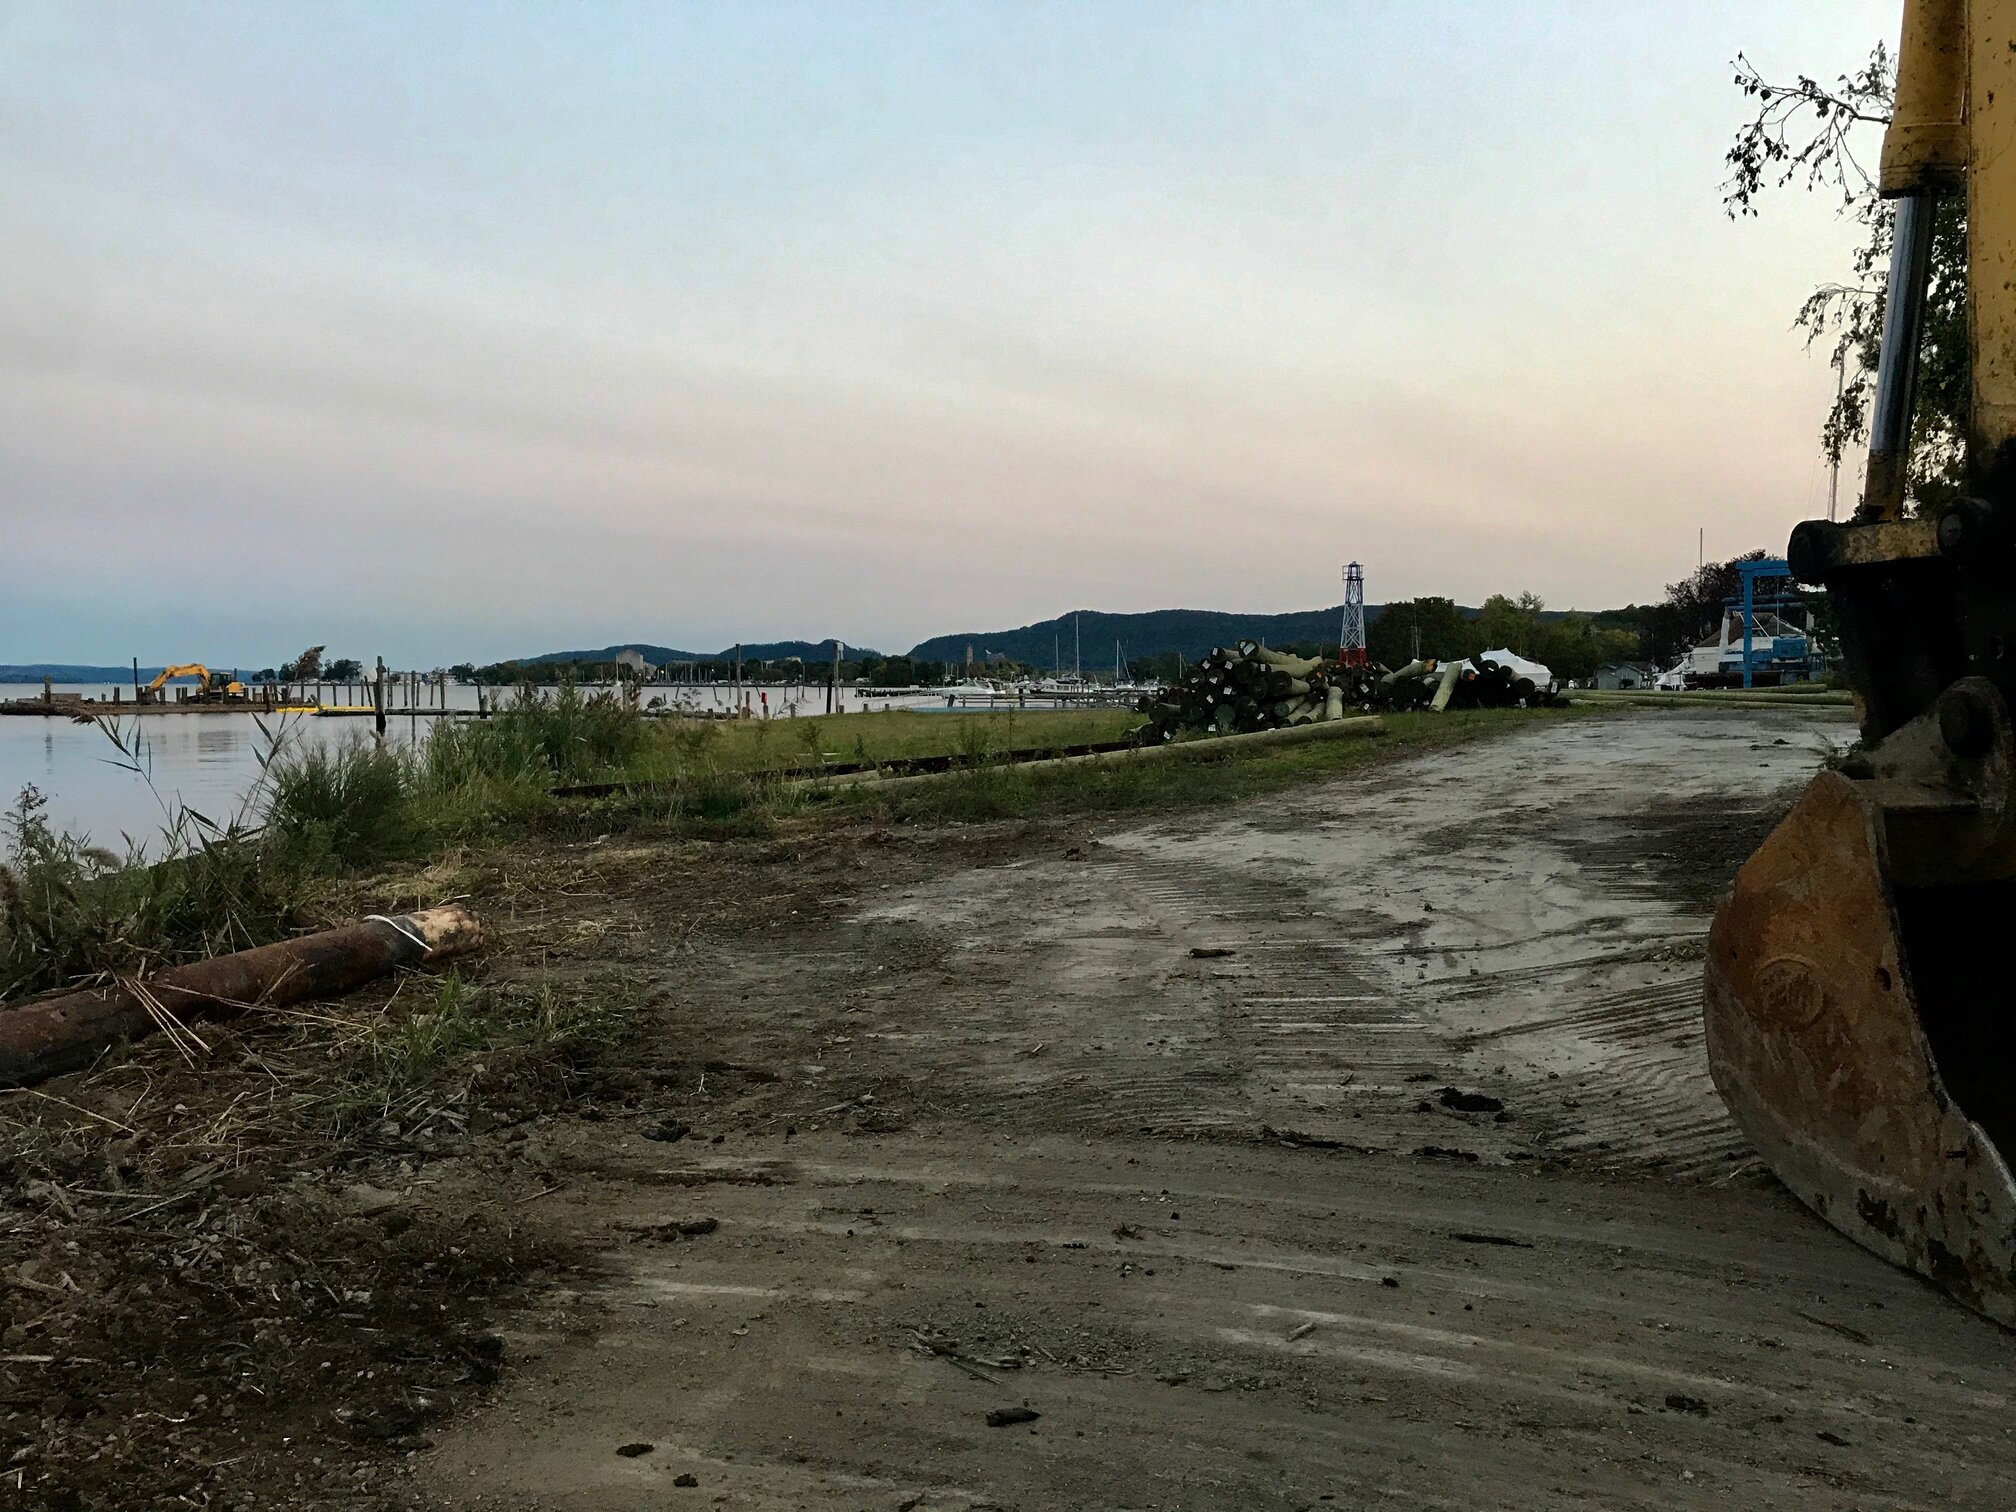 Stony Point Planning Board Moves Waterfront Public Hearing to Zoom